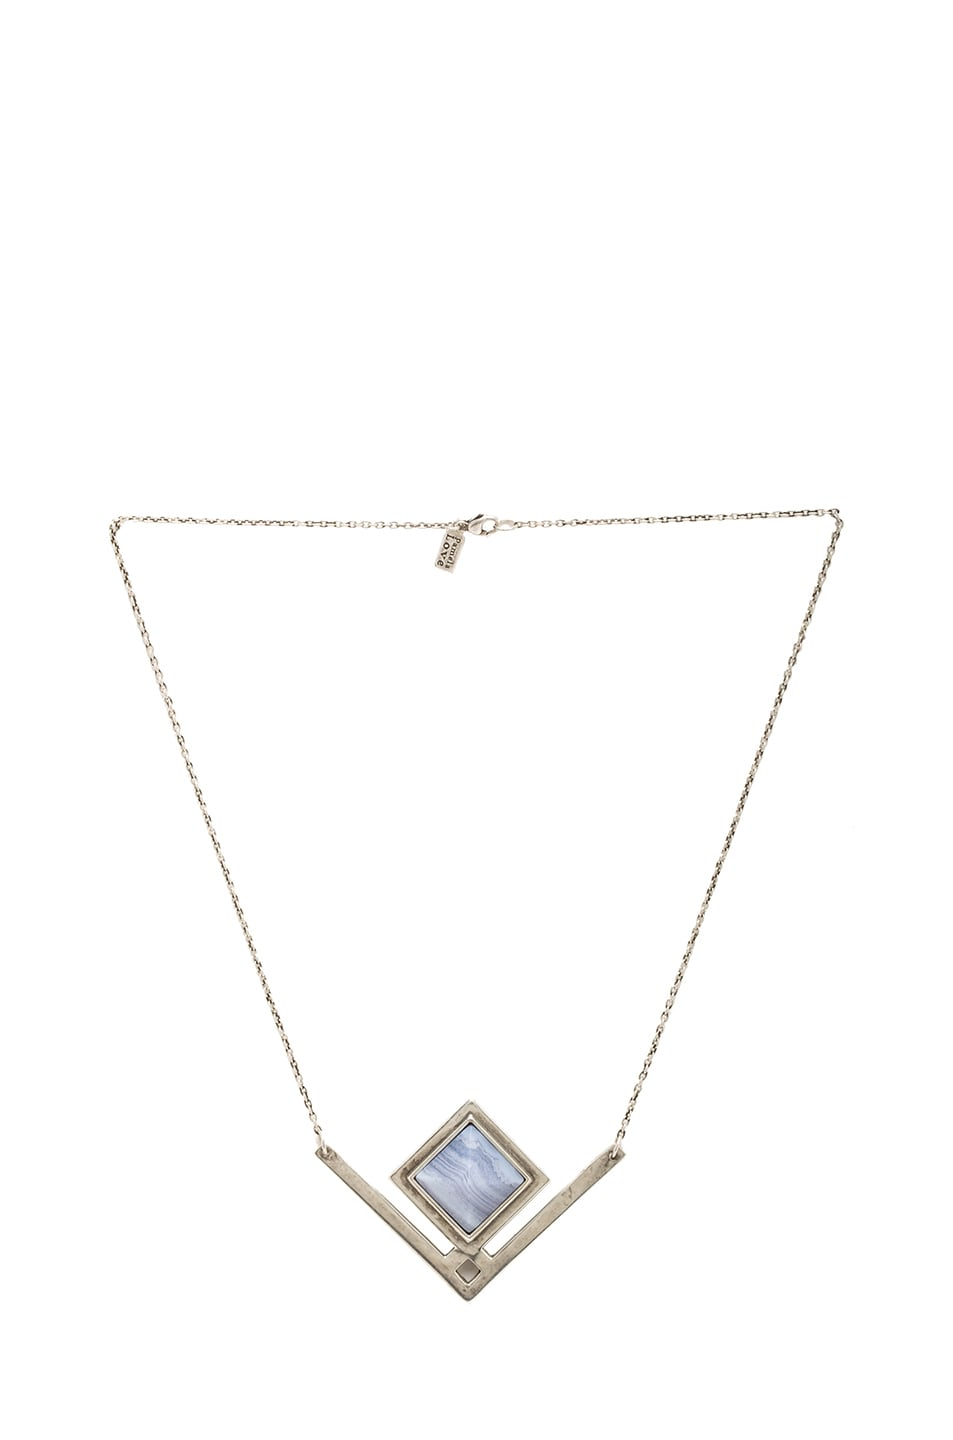 Image 1 of Pamela Love Rise Antique Plated Pendant Necklace in Blue Lace Agate